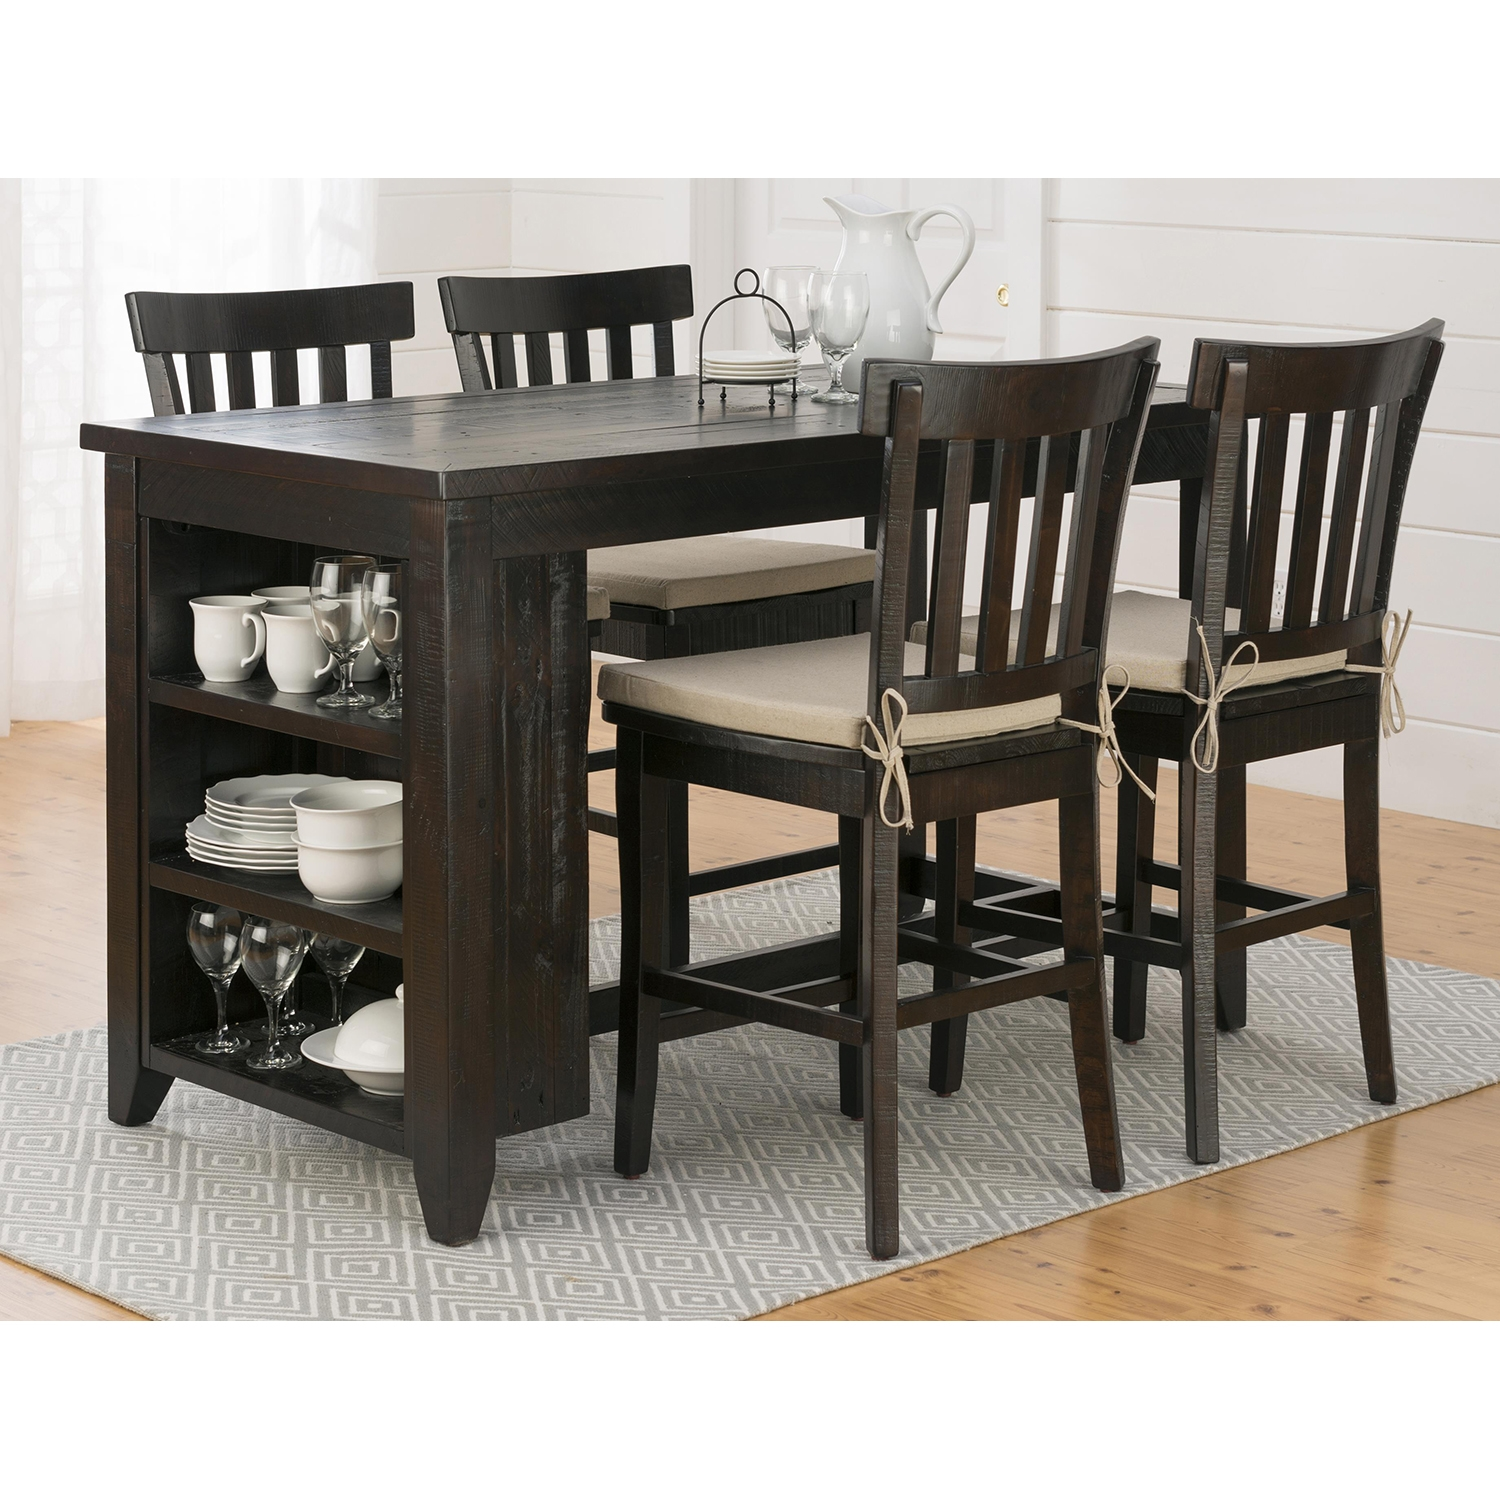 Prospect Creek Counter Height Table - Dark Brown, 3-Shelf Storage - JOFR-257-60